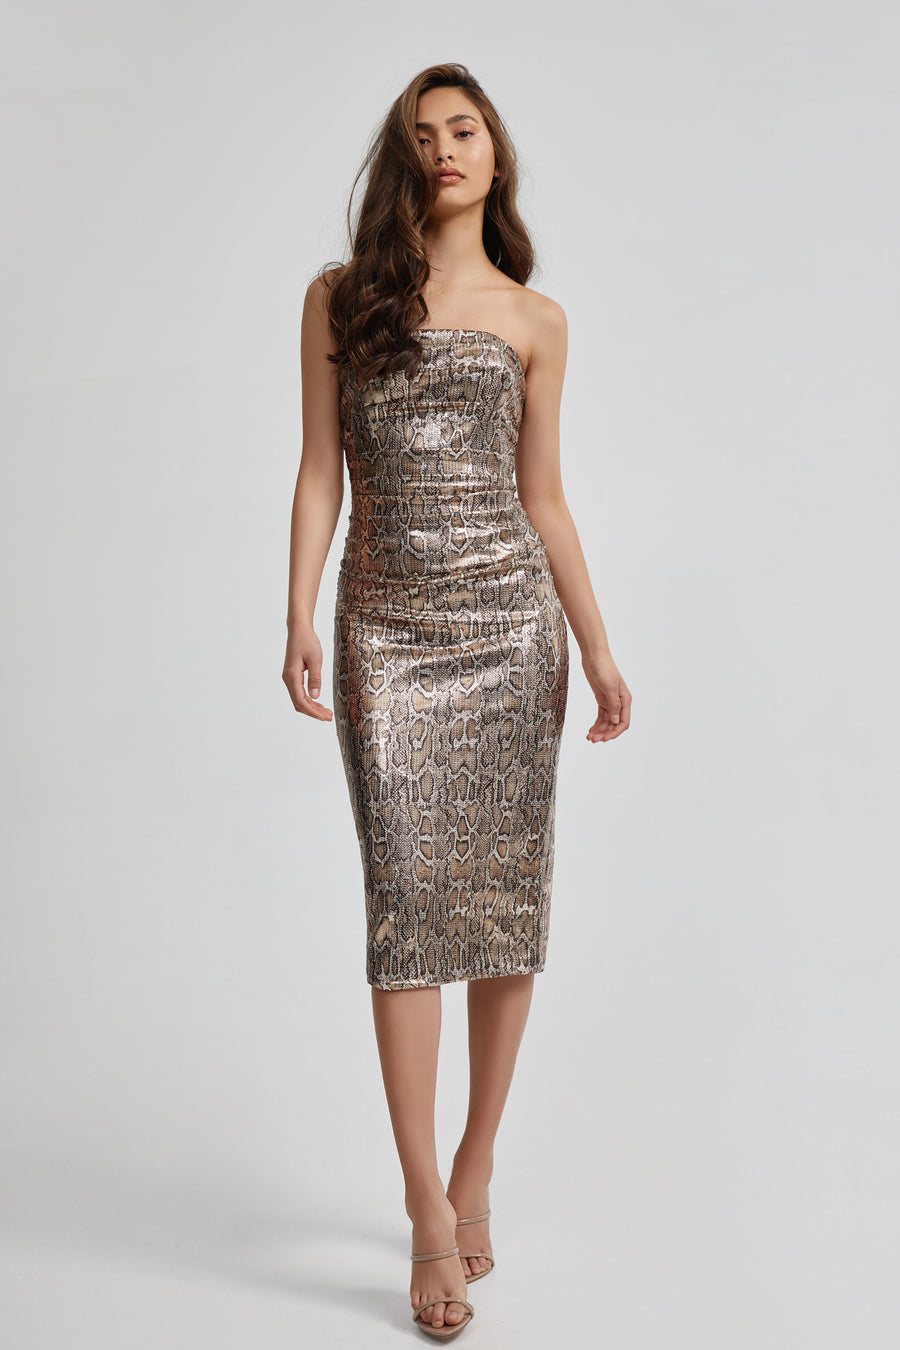 Juniper Dress - Metallic